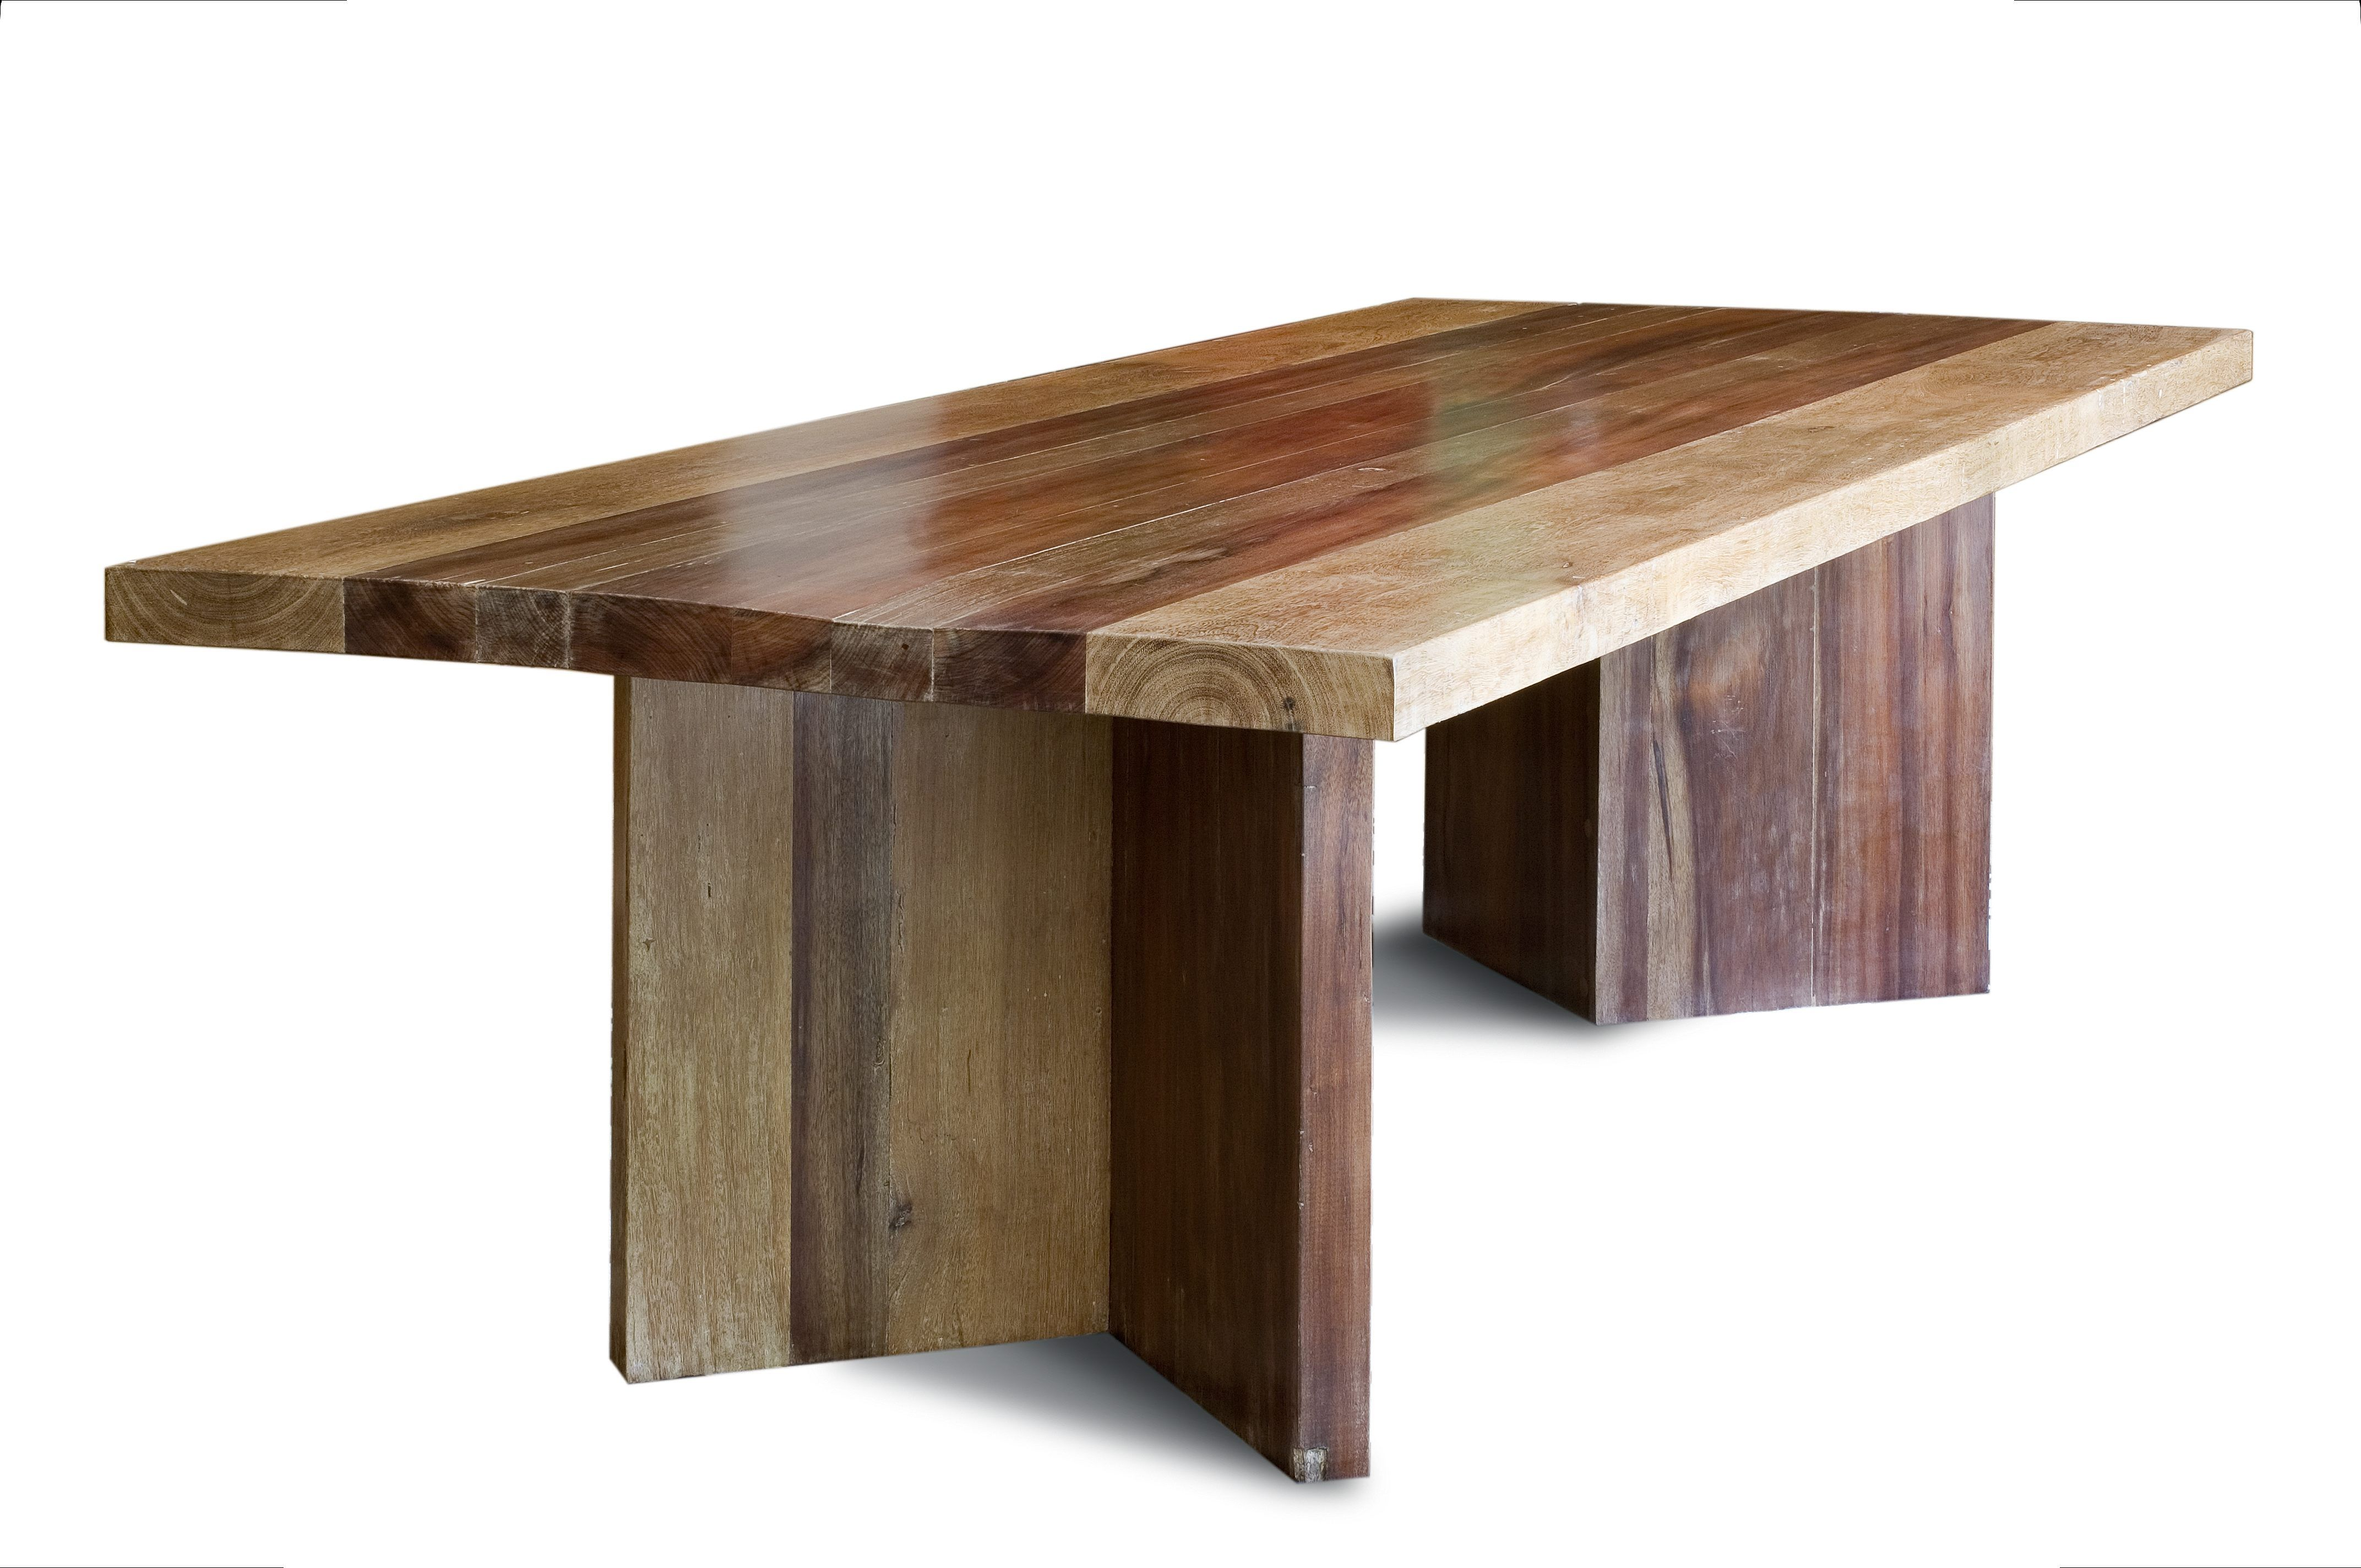 Reclaimed Wood Dining Table Made With Large Planks Of A Combination Of Exotic Hardwood Species